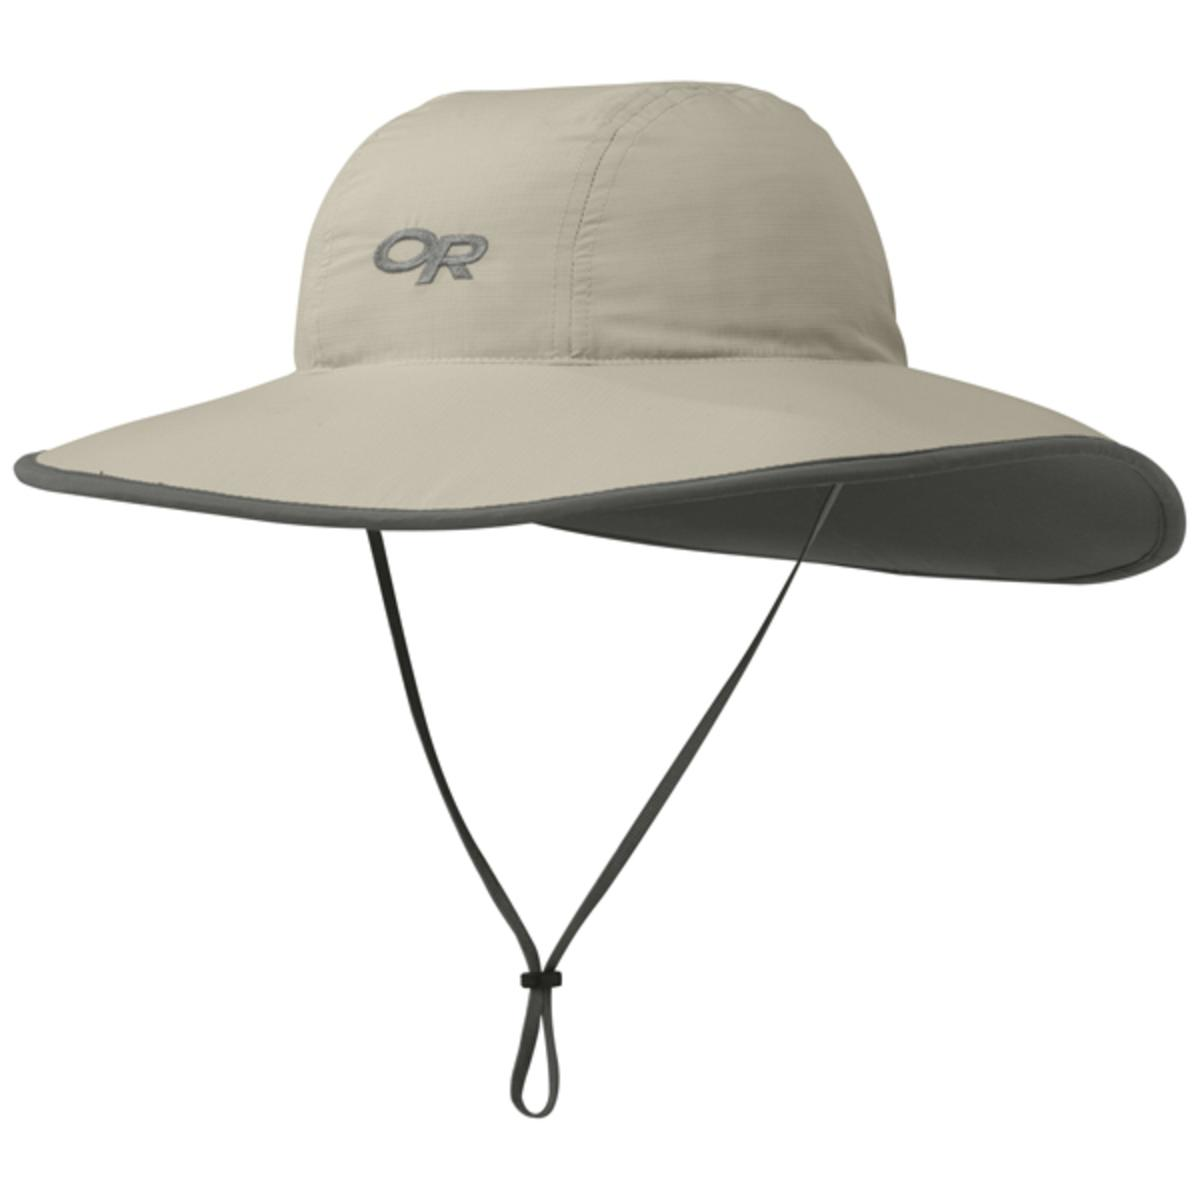 Outdoor Research Aquifer Sun Sombrero Hat - The Warming Store 32ae0744274